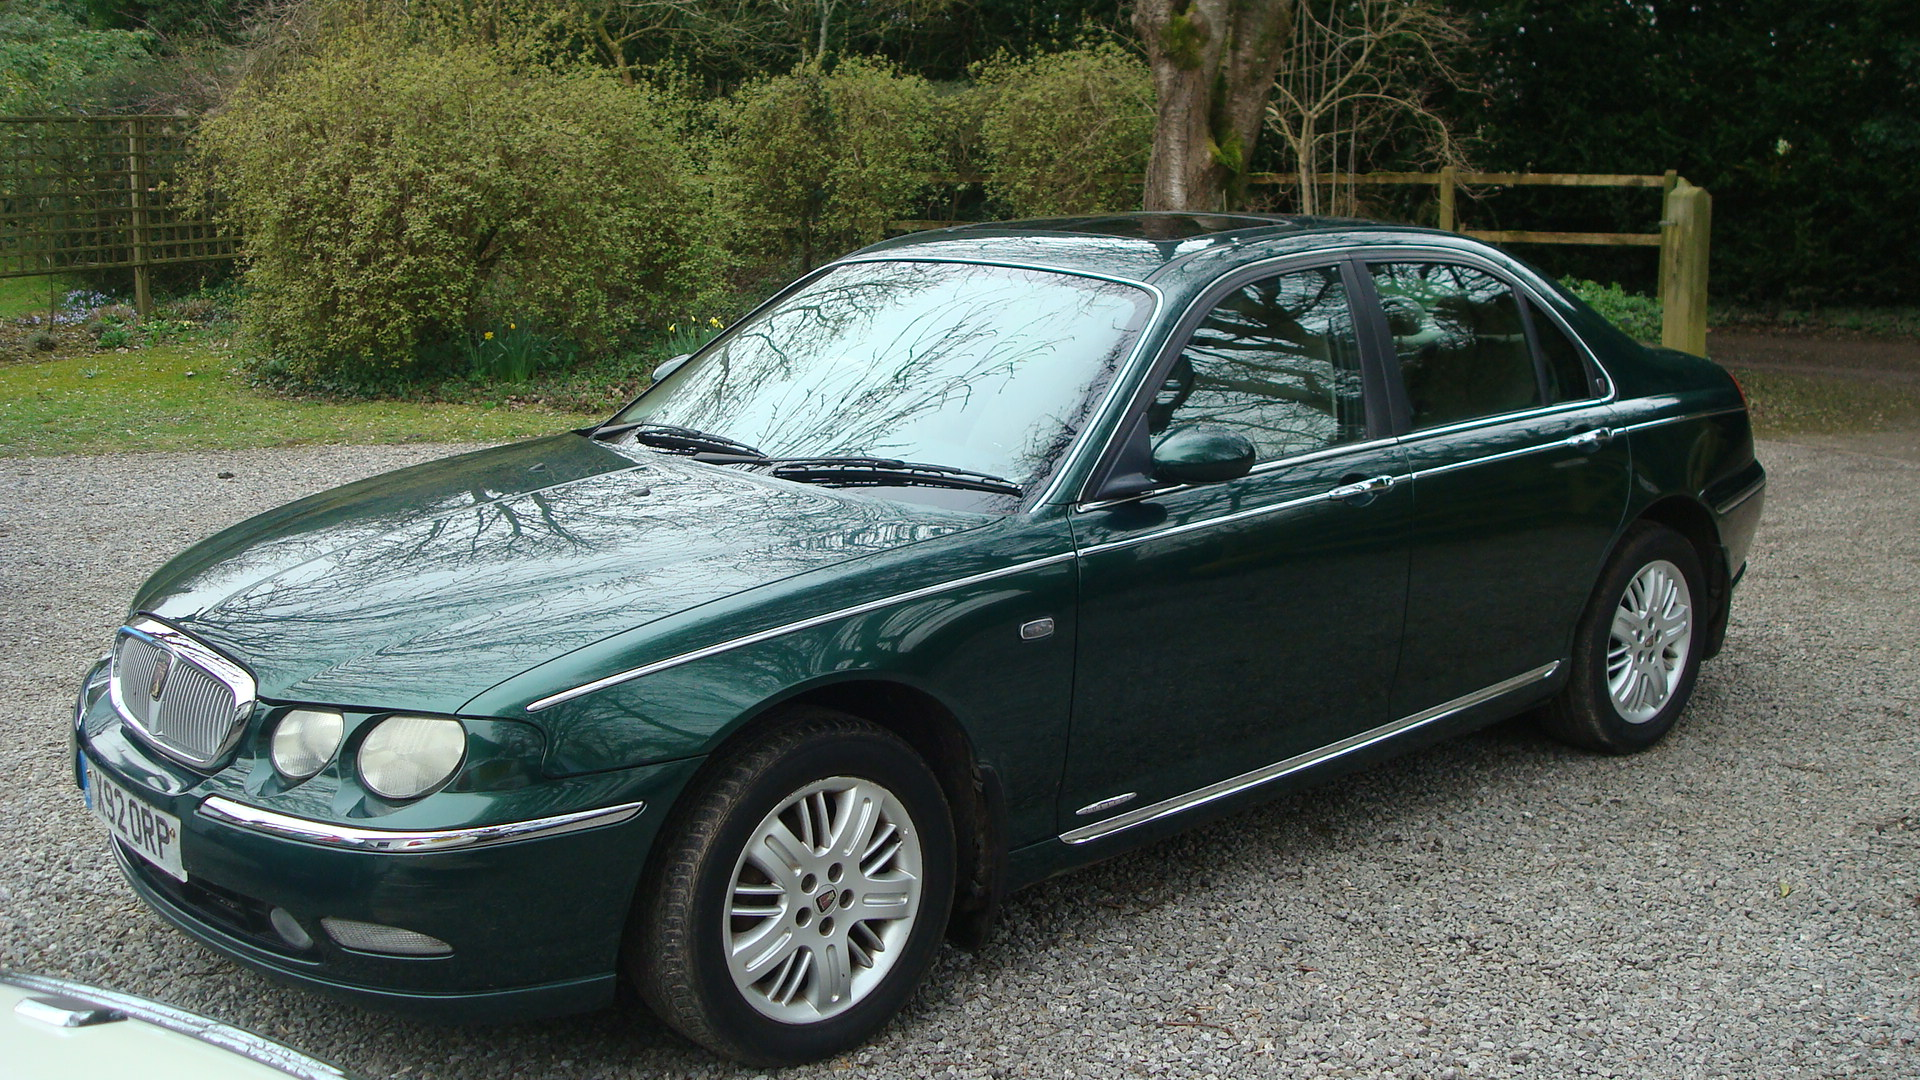 rover 75 2 0 v6 club se saloon country classics country classics. Black Bedroom Furniture Sets. Home Design Ideas